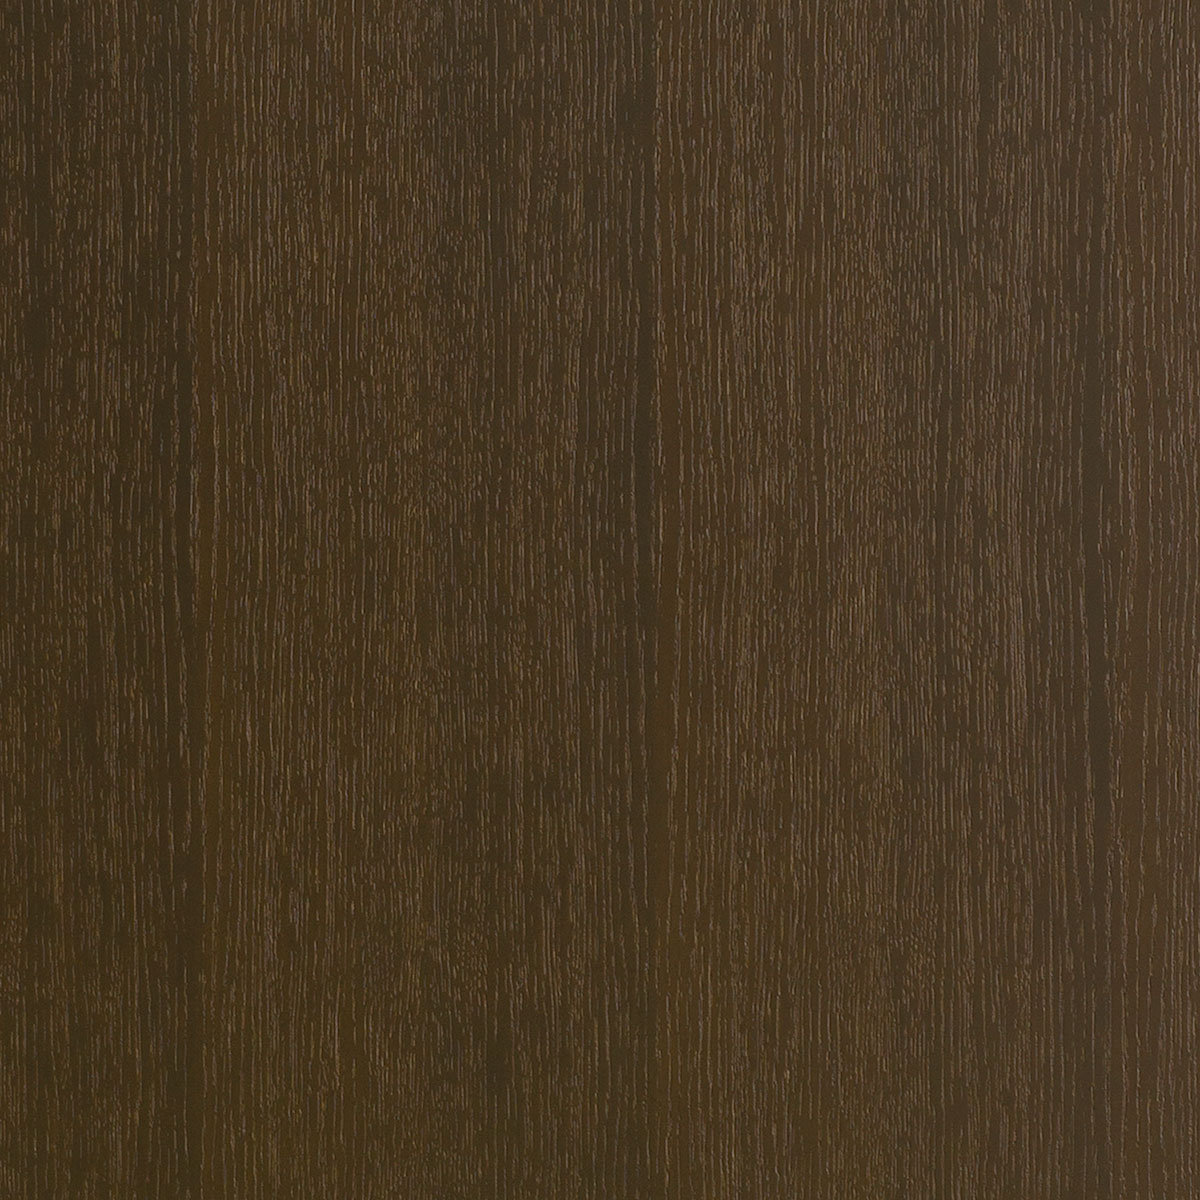 Oak Wood, Walnut Finish